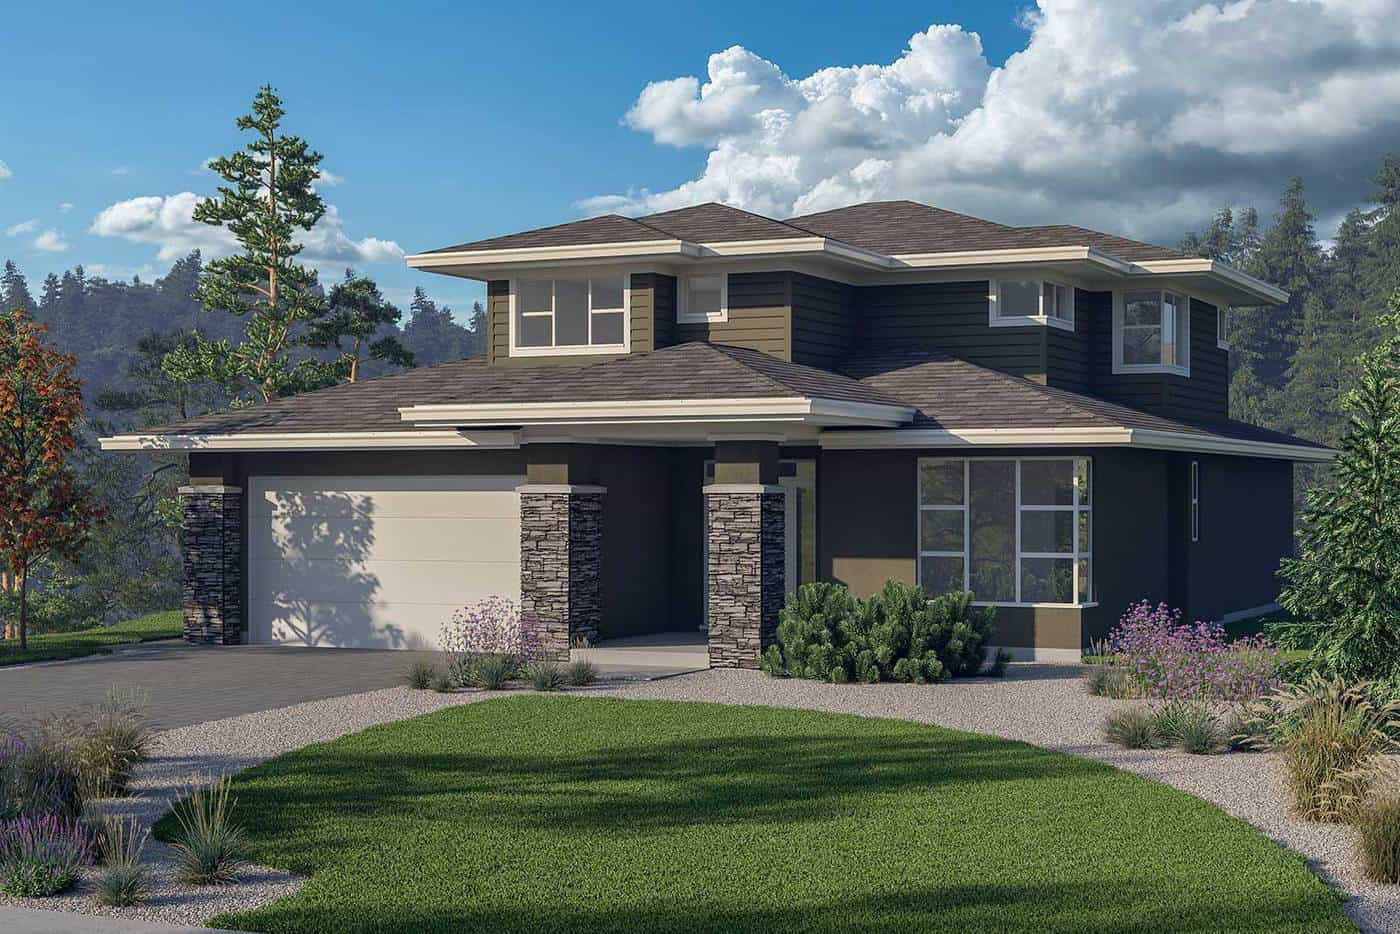 Bewburch Home Plan by Jenish Design Ltd. rendering